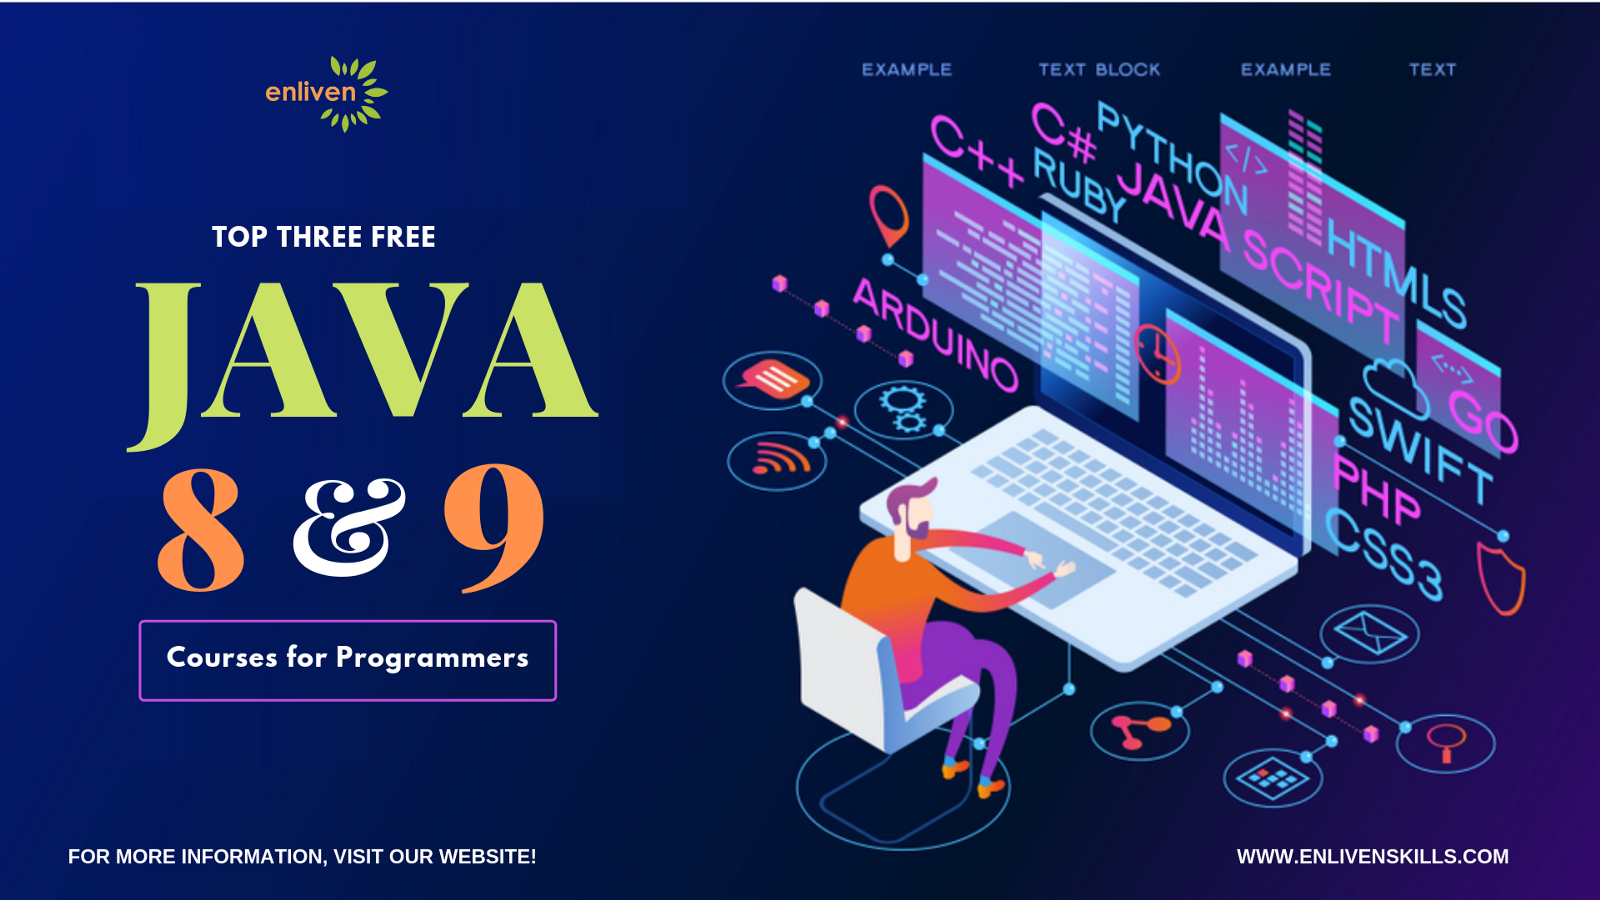 Top three Free Java 8 and 9 Courses for Programmers